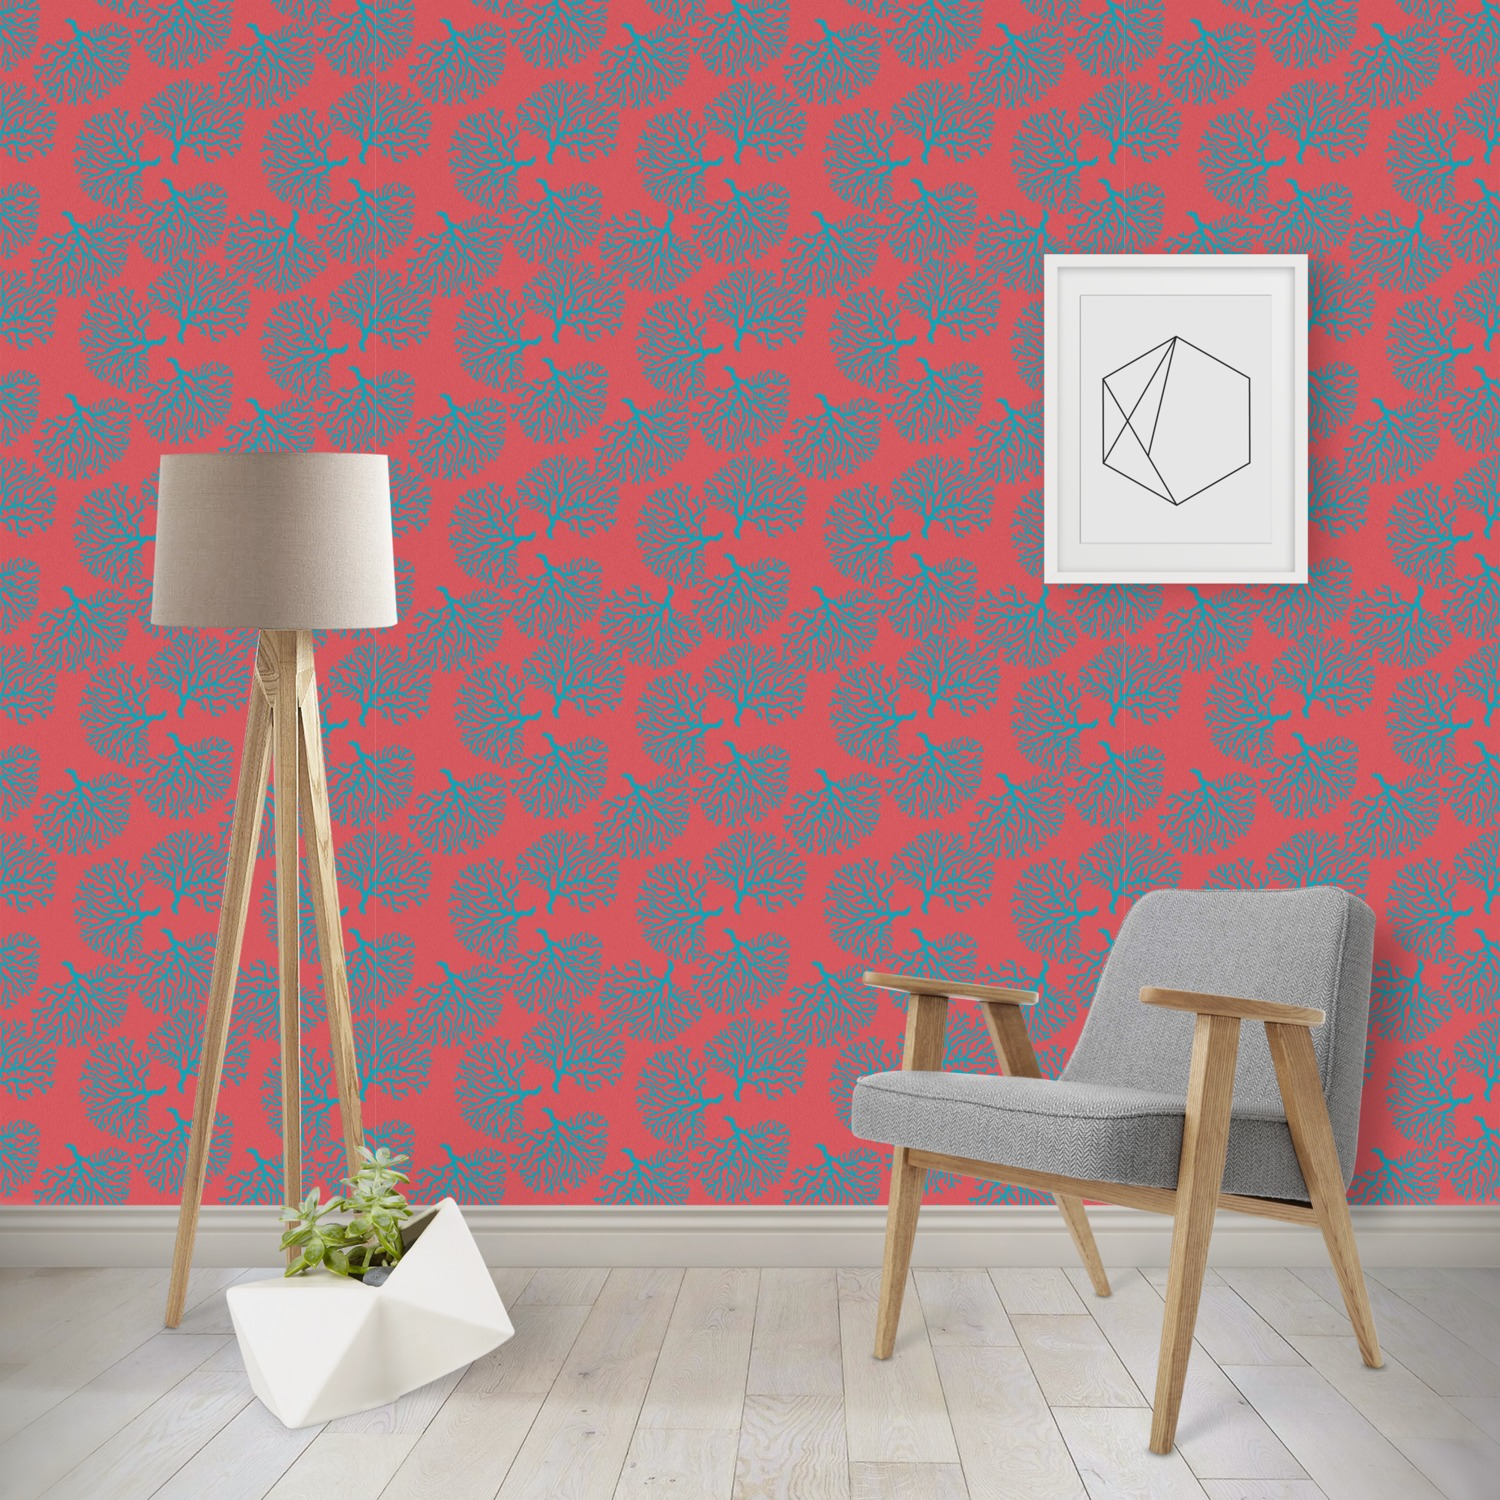 Coral Teal Wallpaper Surface Covering Water Activated